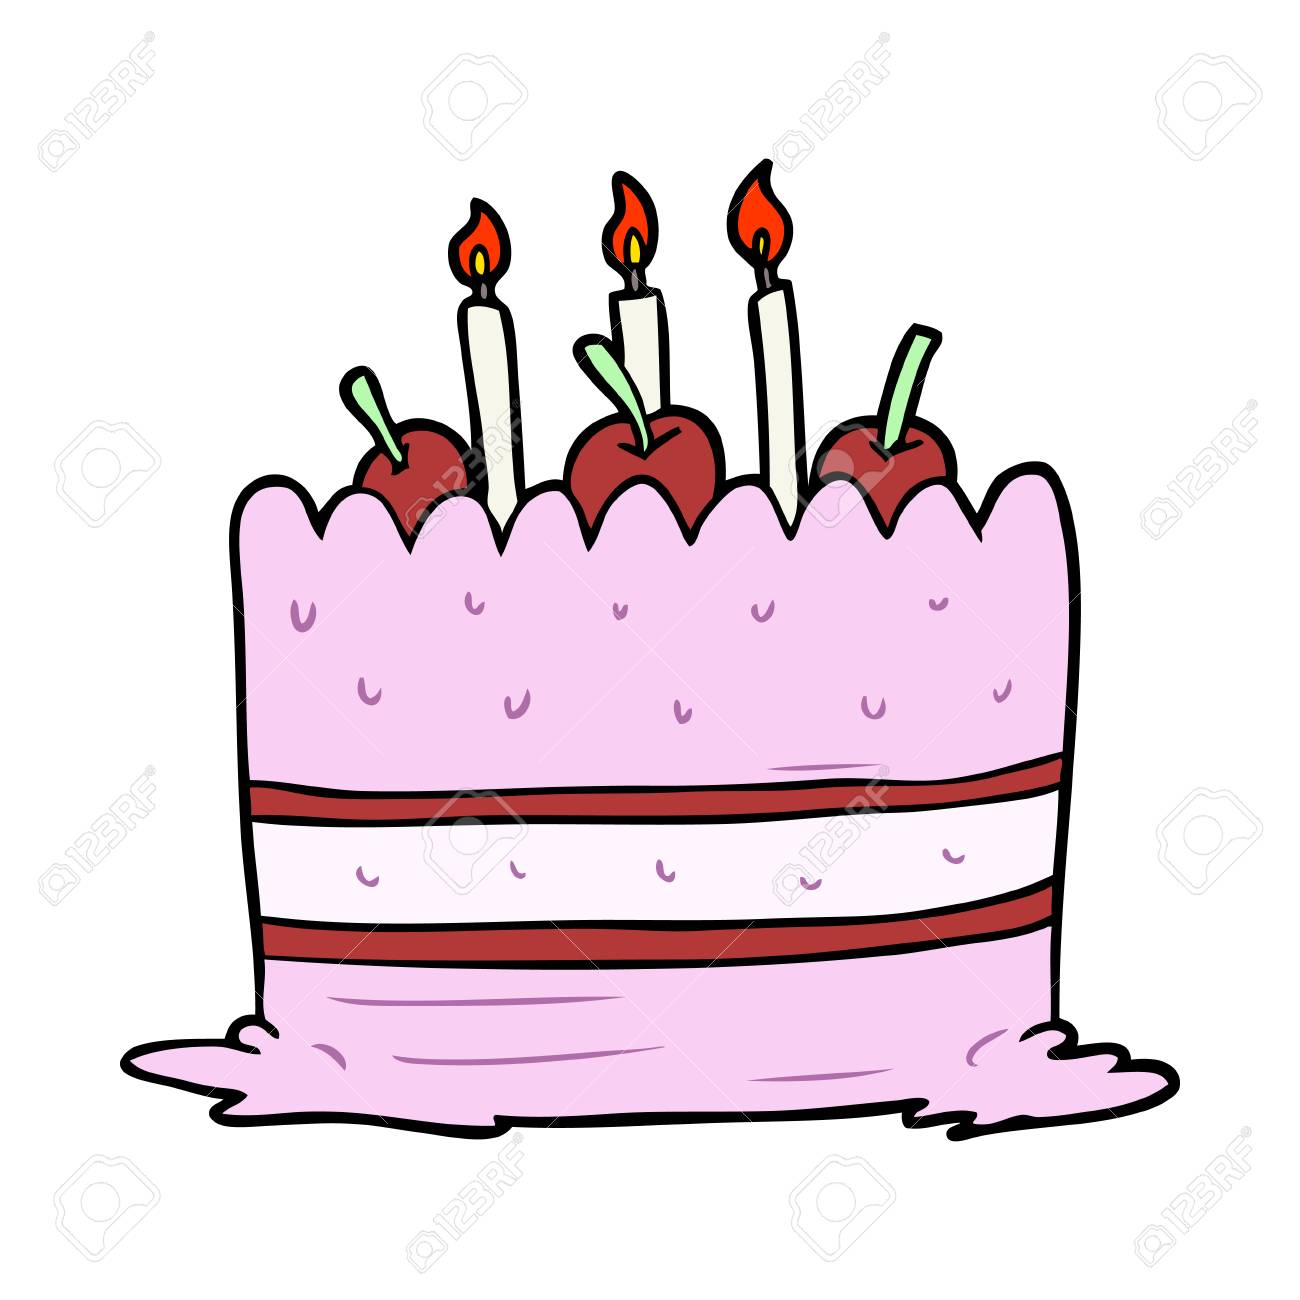 Cartoon Birthday Cake Stock Vector